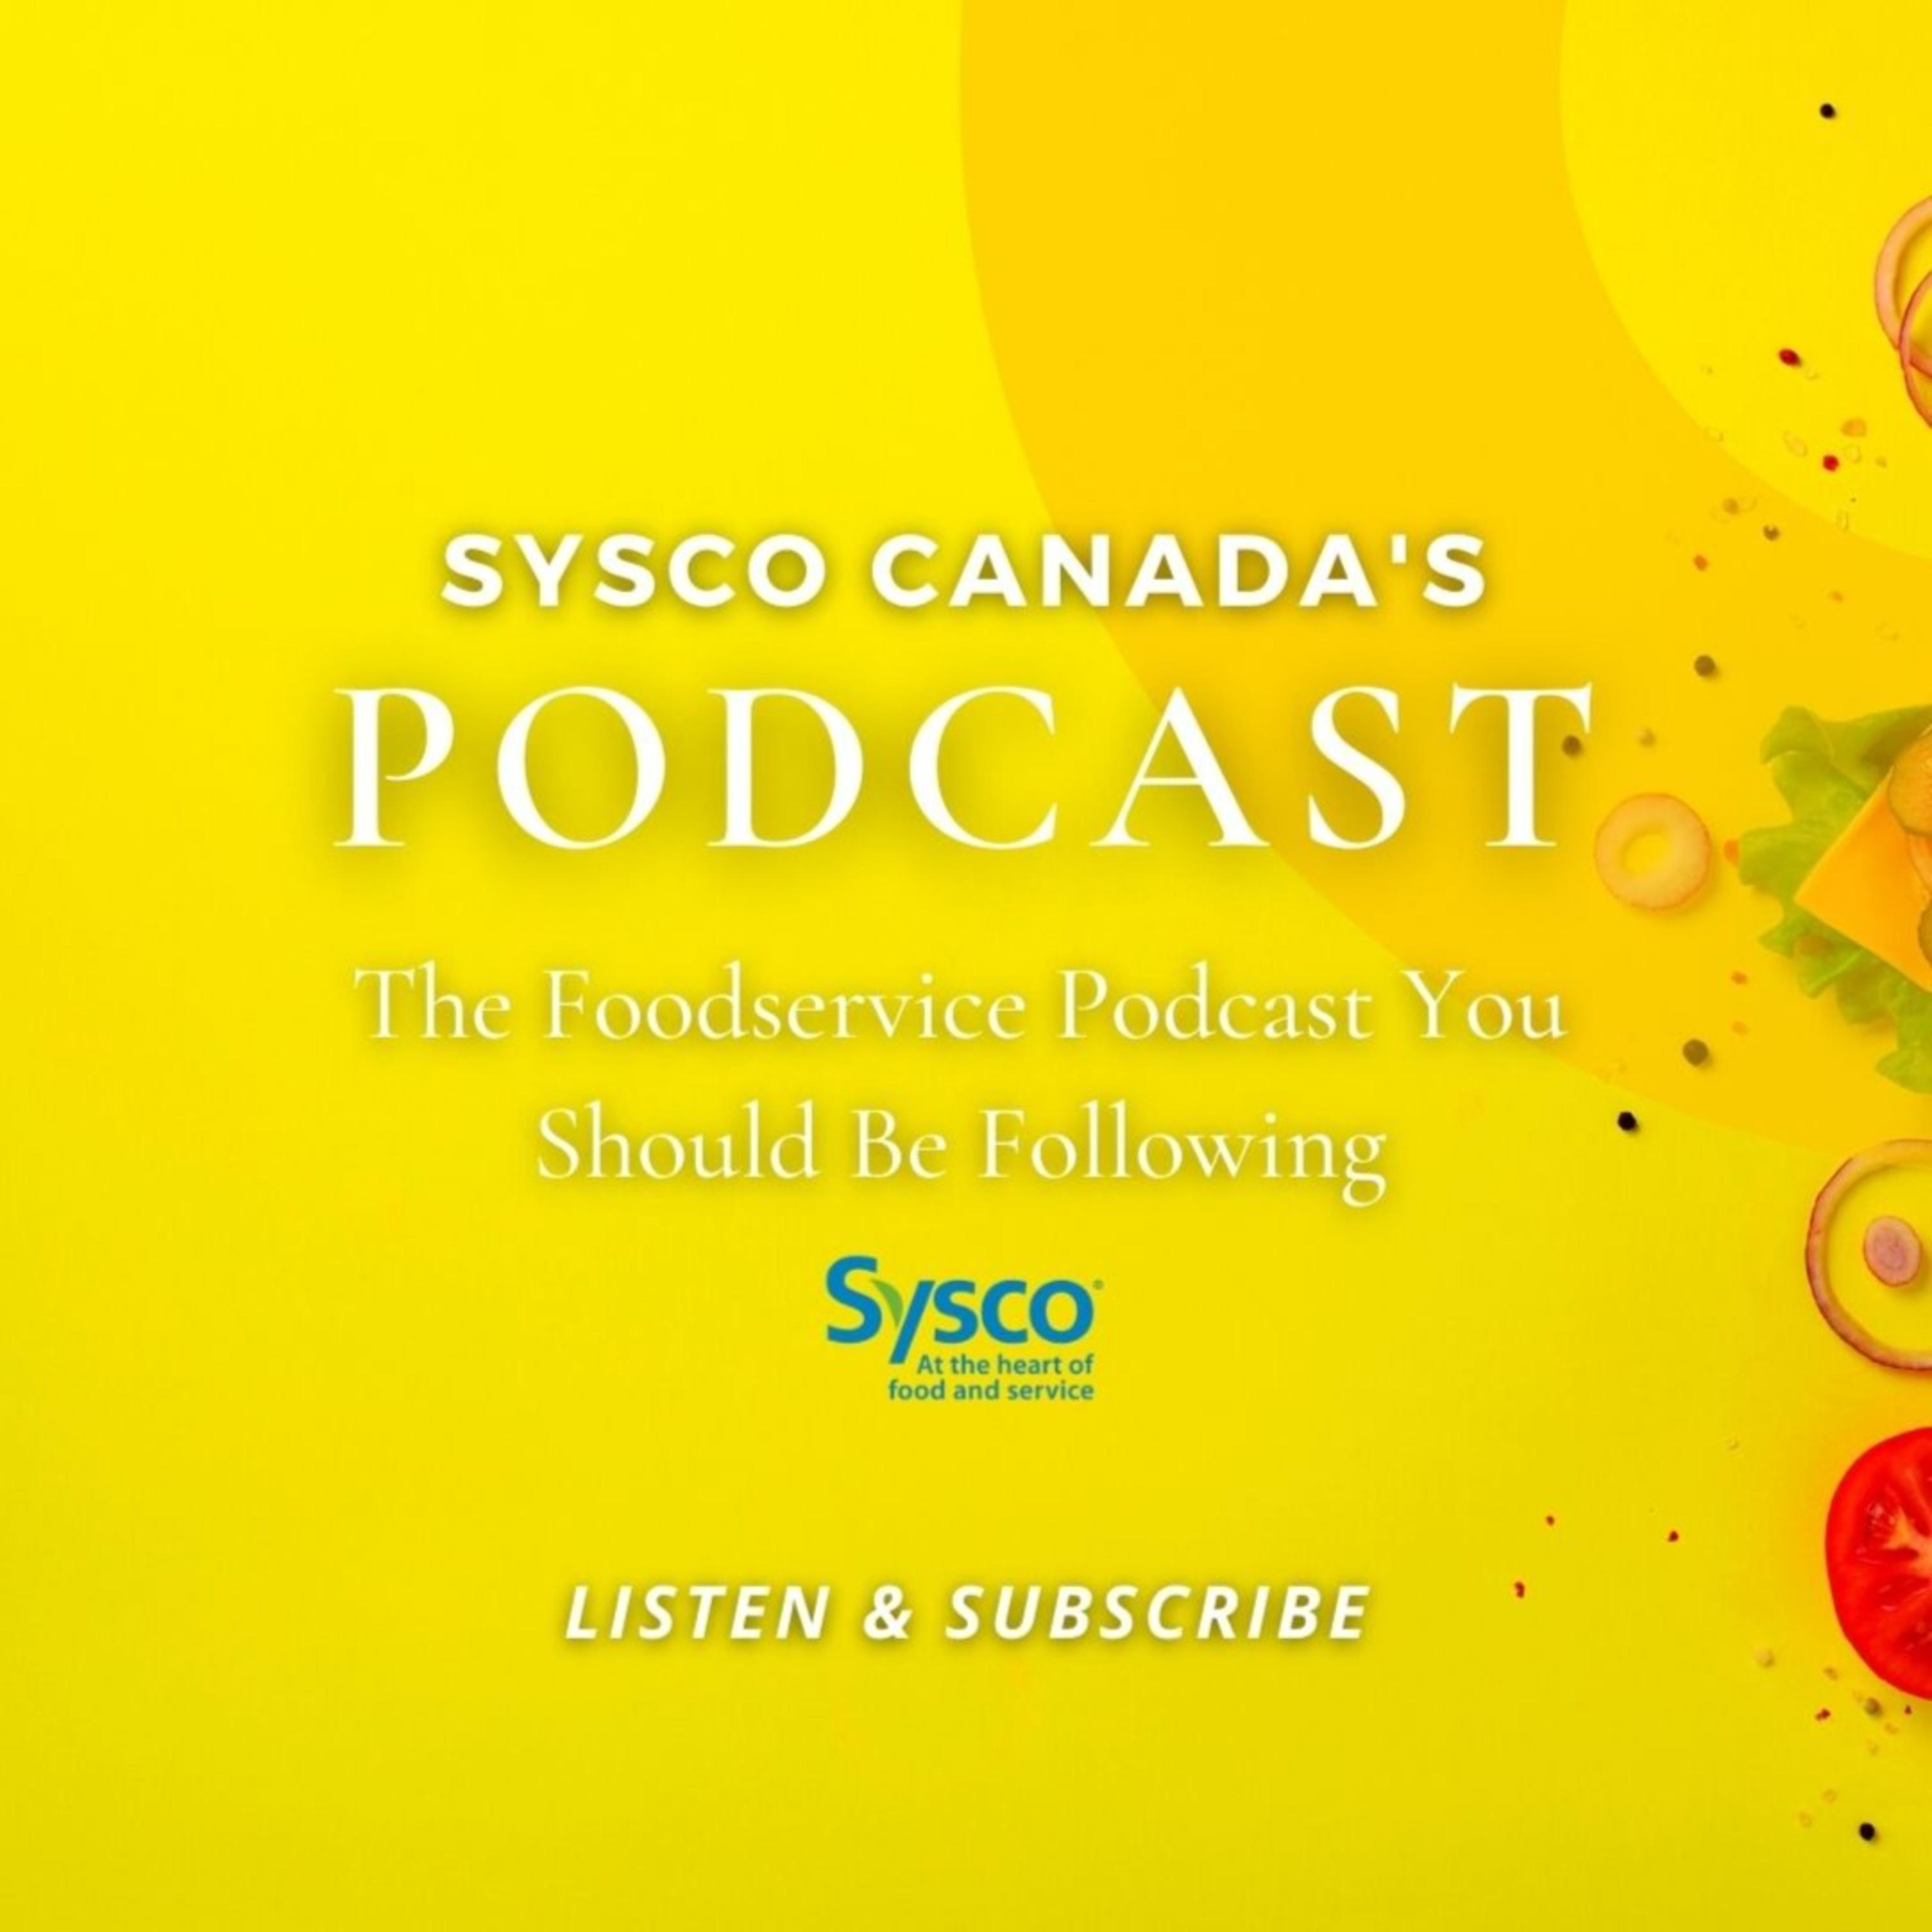 Sysco Canada's Podcast Show - The Only Foodservice Podcast Show in Canada!